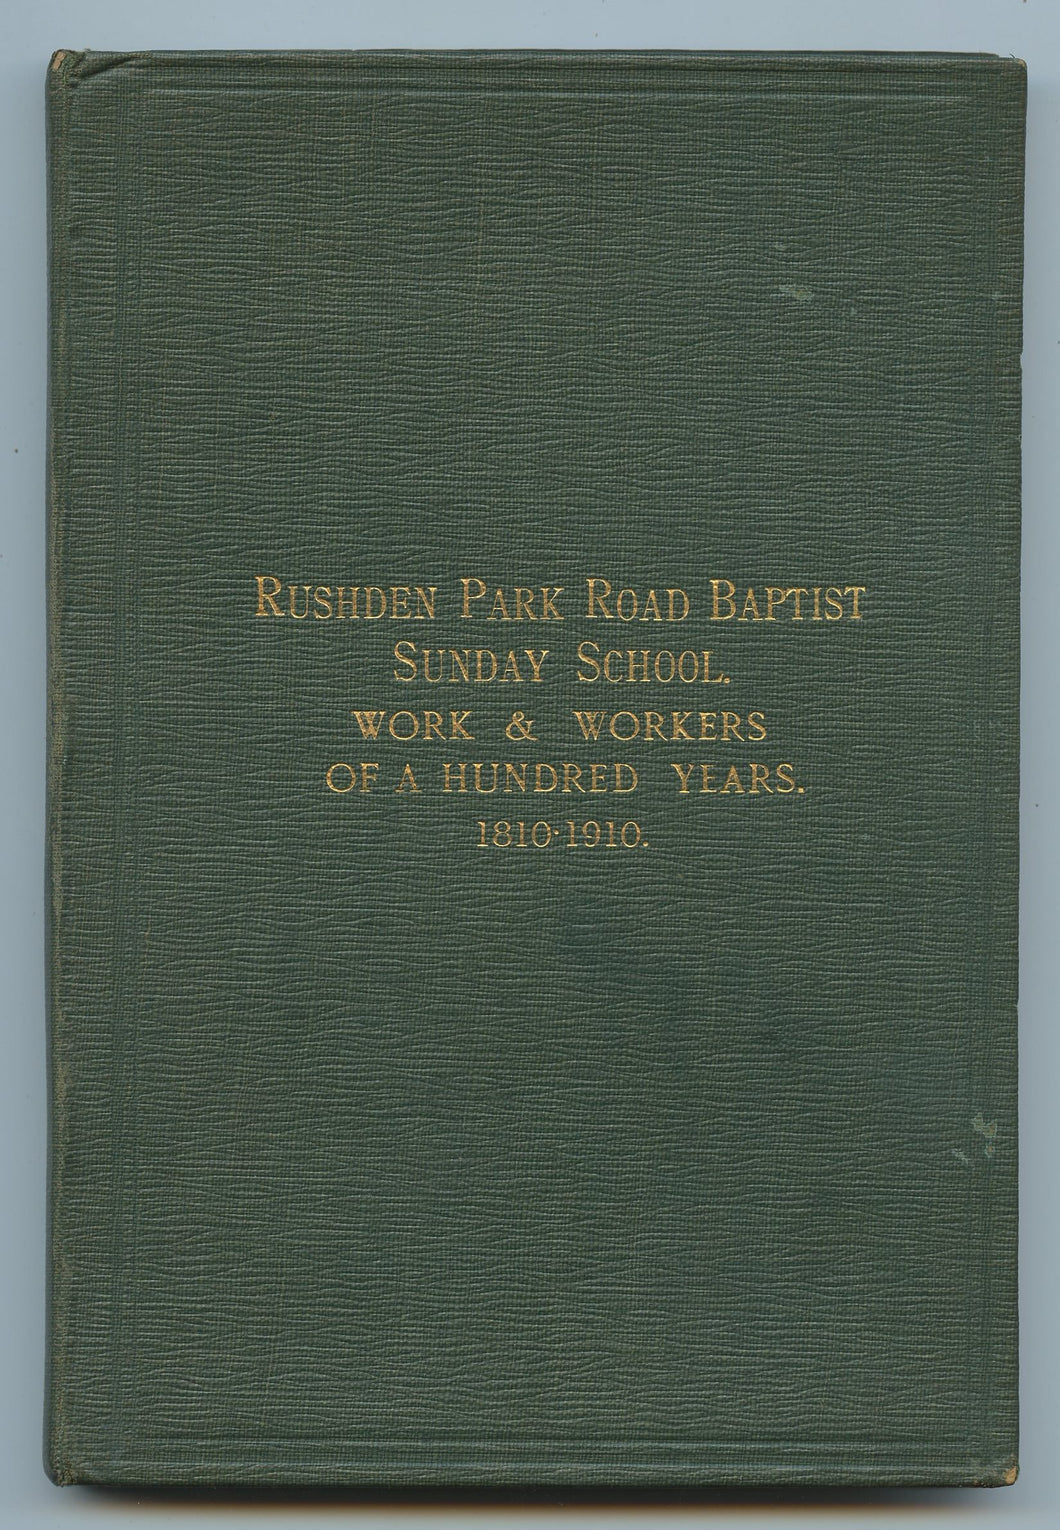 The Rushden Park Road Baptist Sunday School: Work and Workers of a Hundred Years 1810-1910